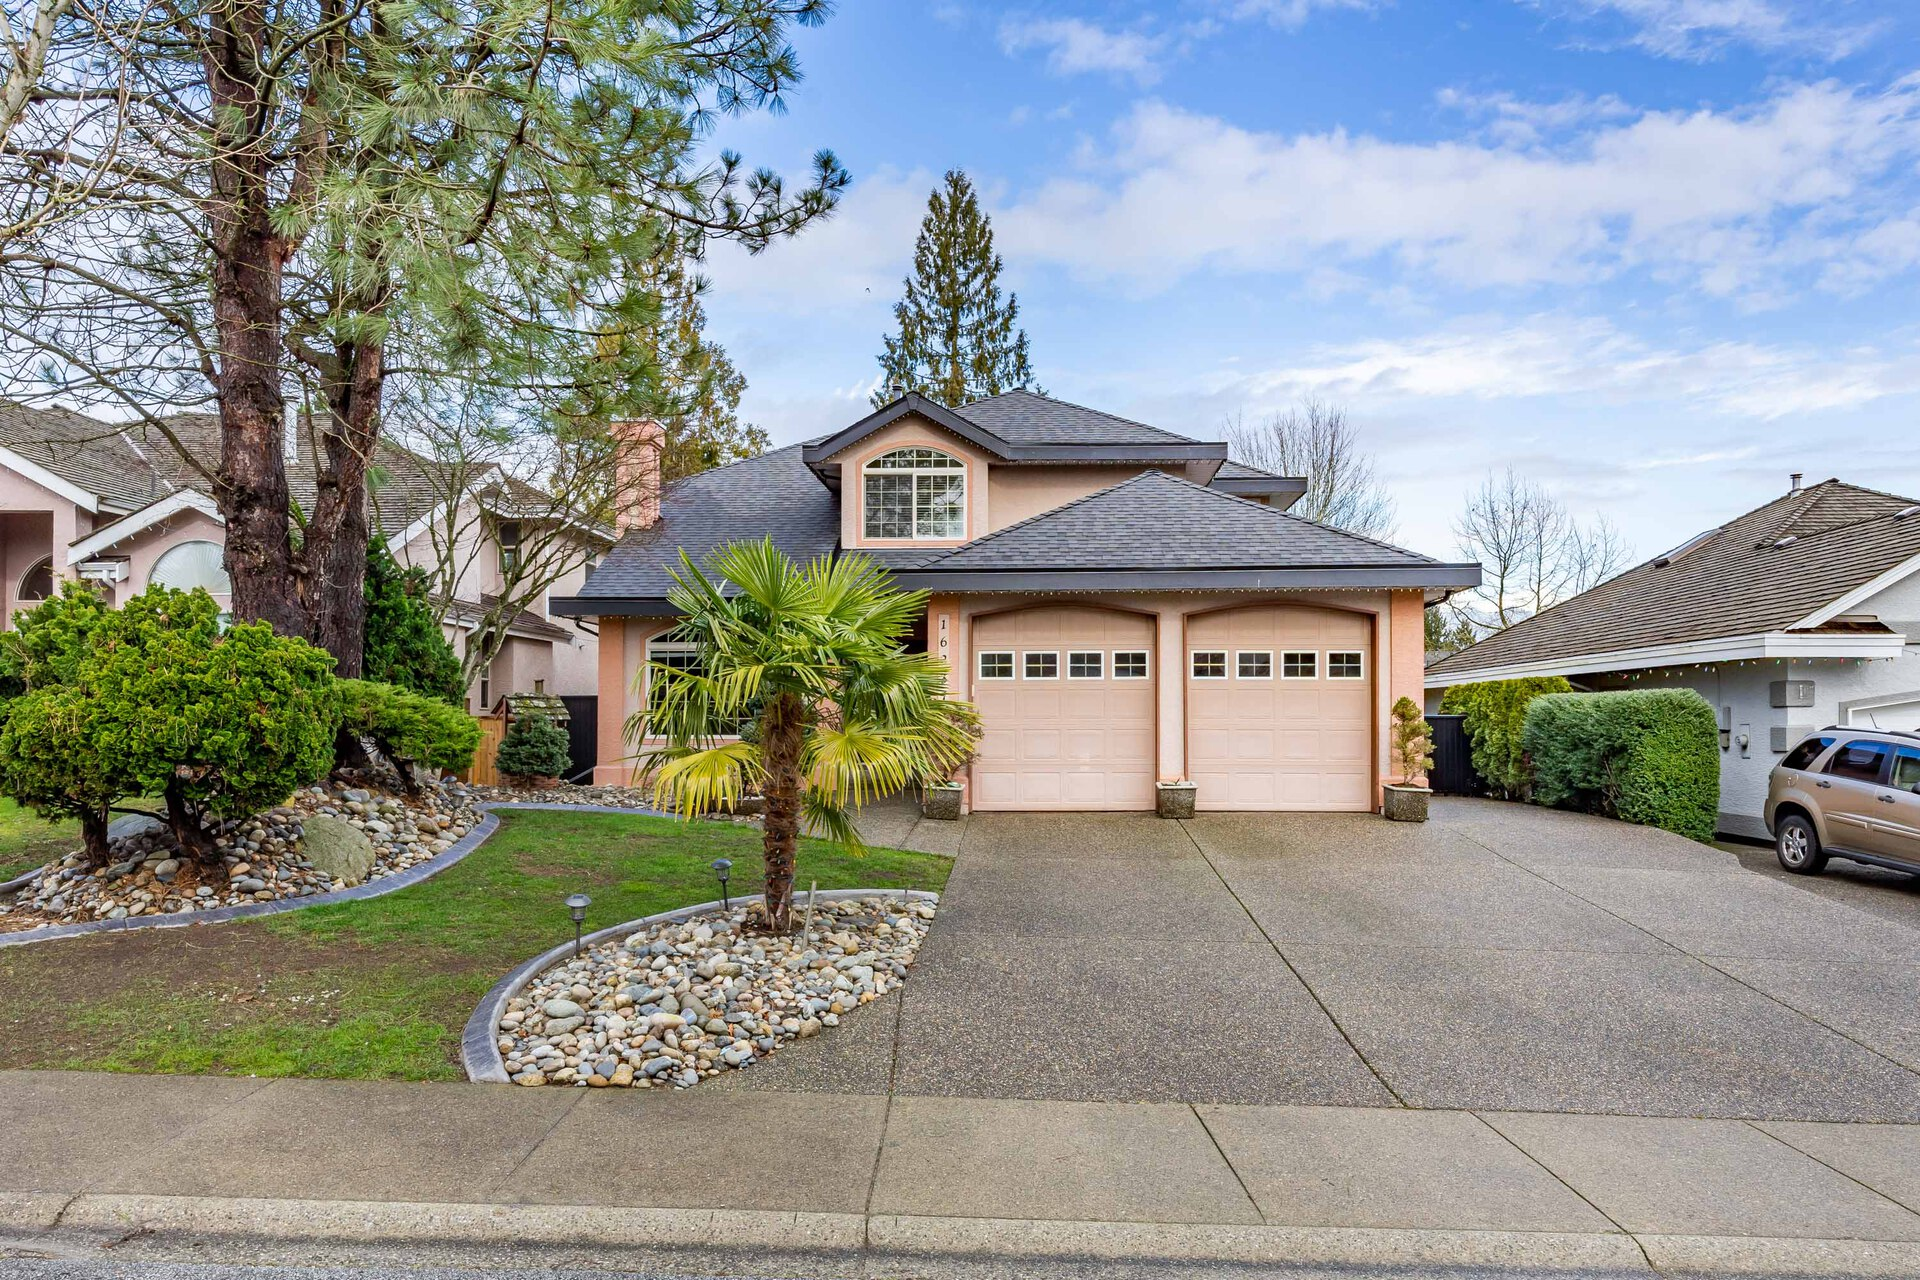 53869_2 at 16237 111 A Avenue, Fraser Heights, North Surrey